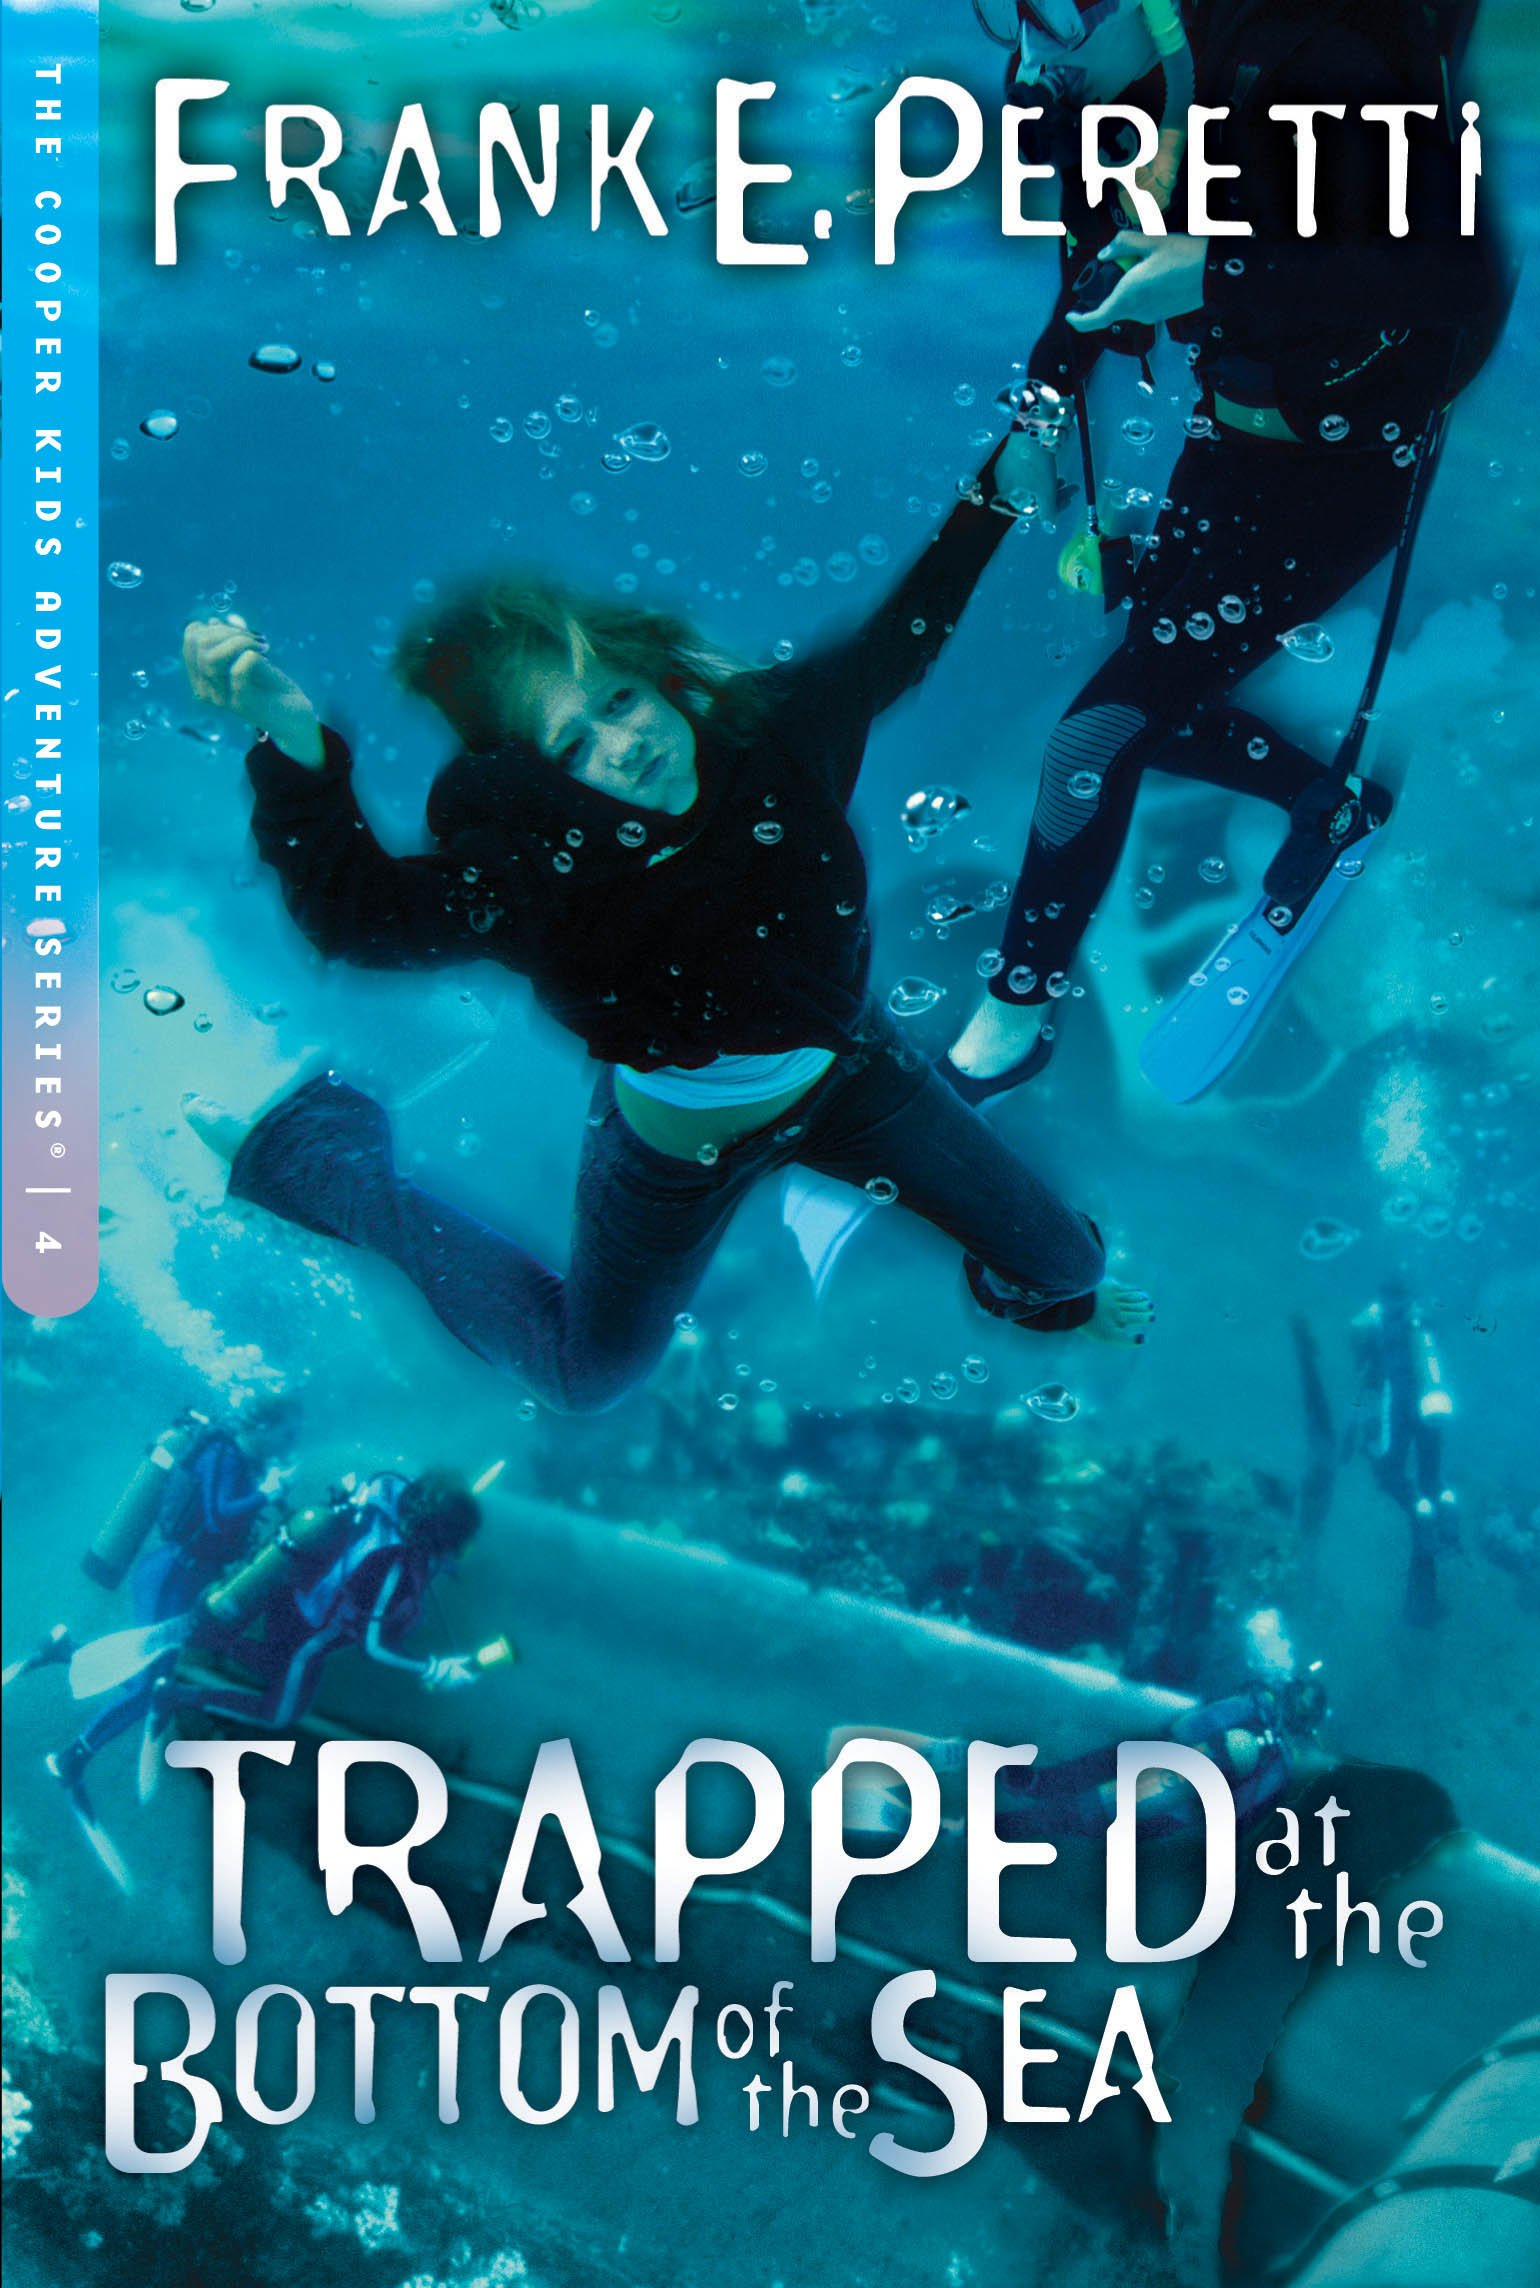 Read Online Trapped at the Bottom of the Sea (The Cooper Kids Adventure Series #4) PDF